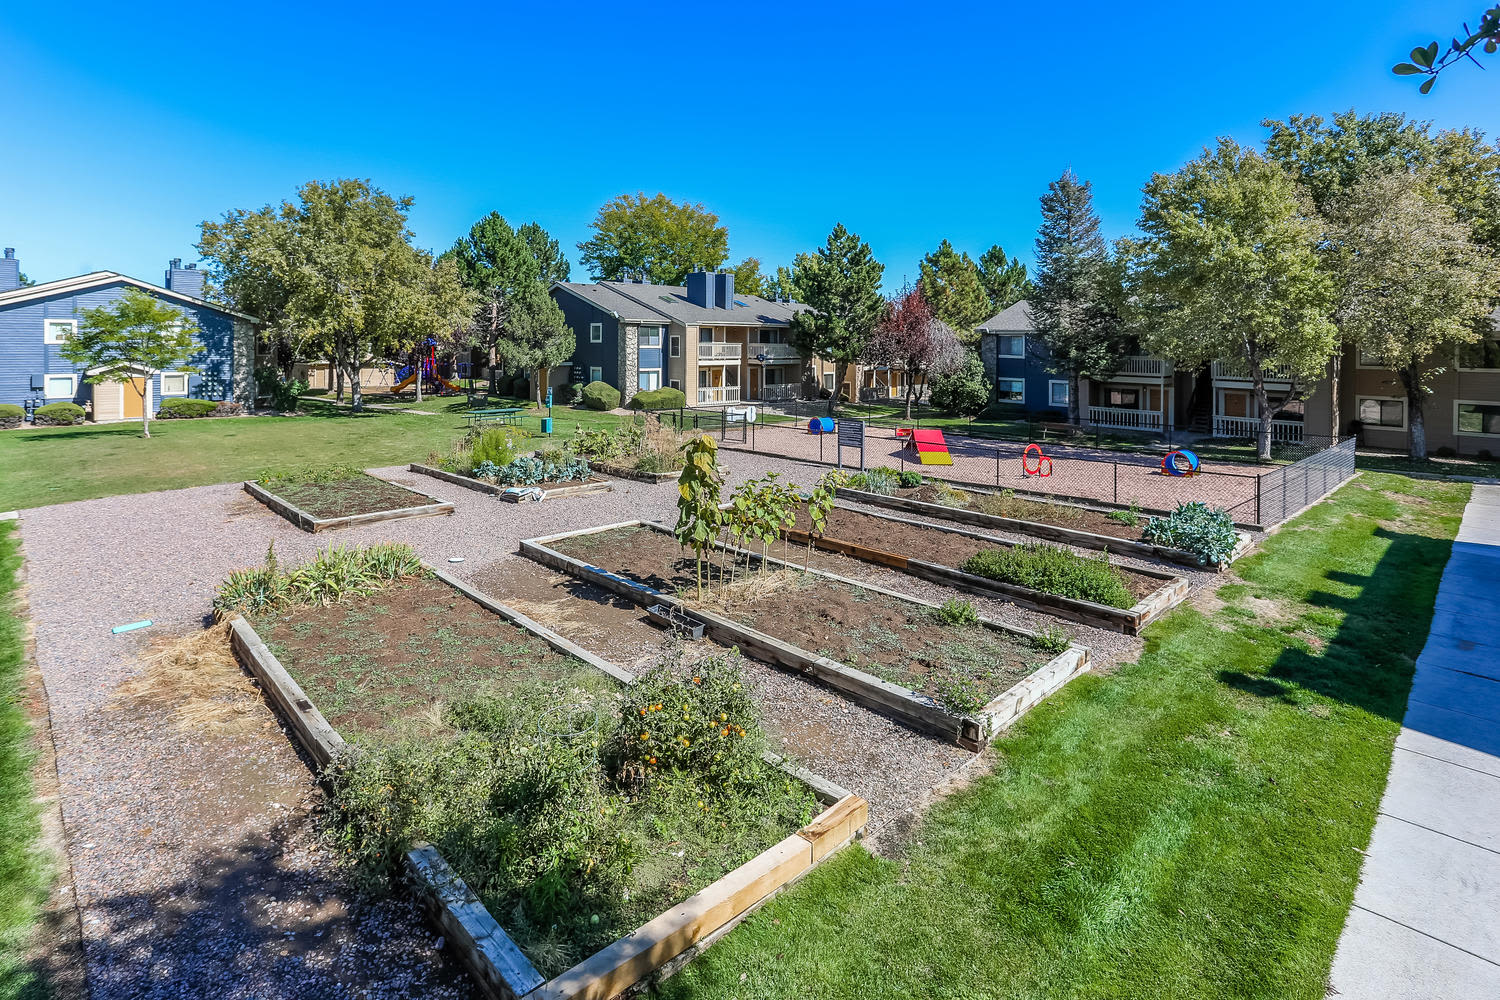 community garden at City Center Station Apartments in Aurora, Colorado